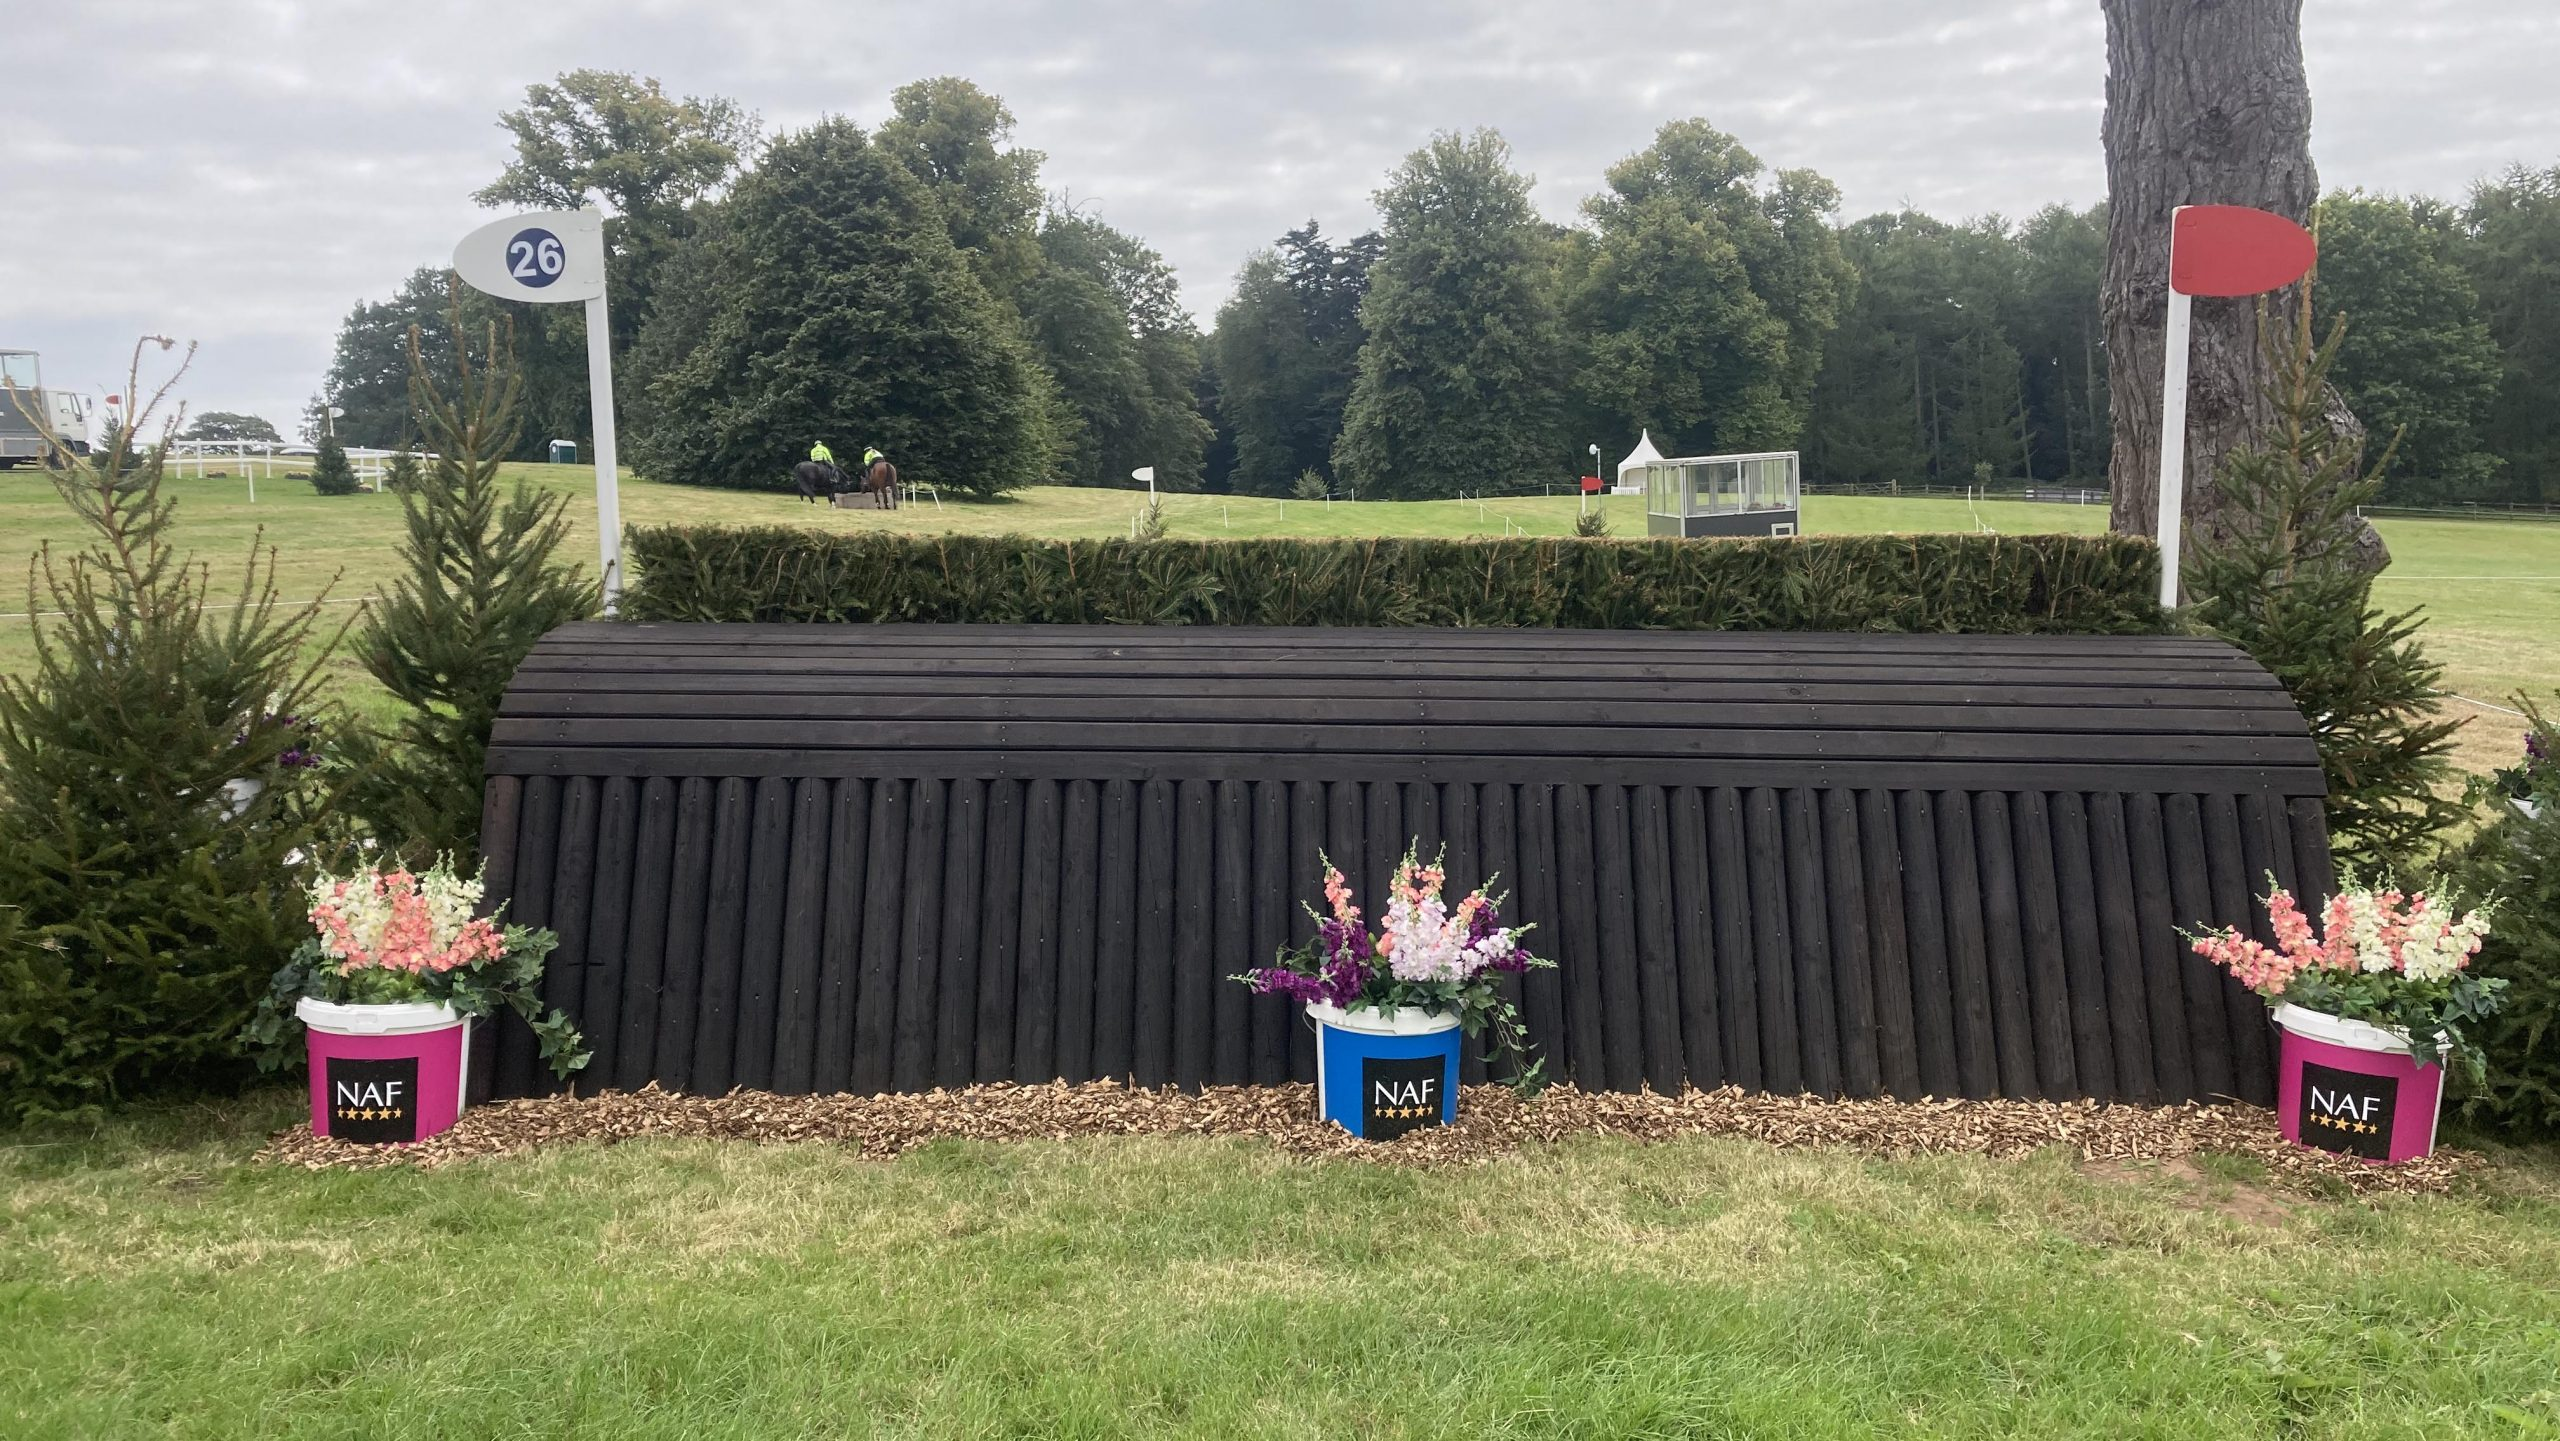 Bicton Horse Trials cross-country course: five-star fence 26